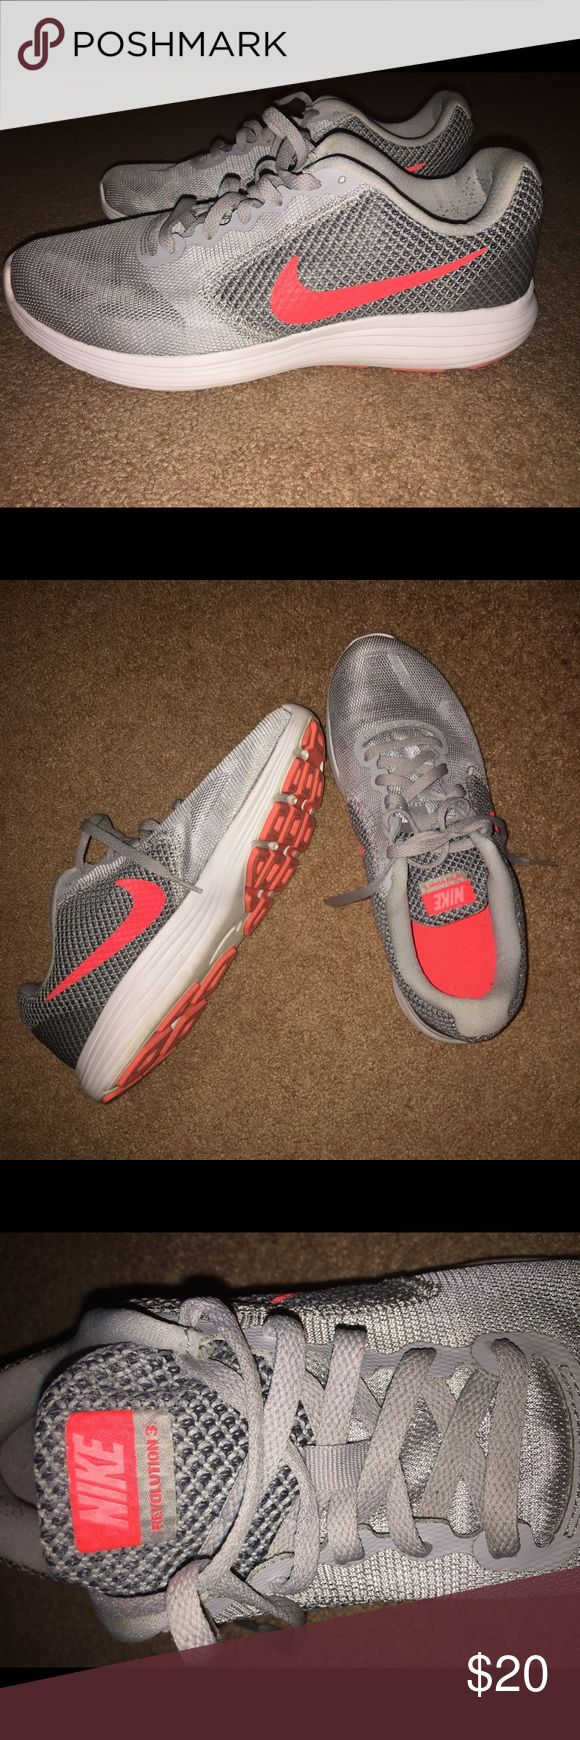 NIKE Revolution 3 Shoes Orange/Pink and Grey, Nike Revolution 3 Athletic Shoes. Great condition, barely worn. Fits true to size. Nike Shoes Athletic Shoes